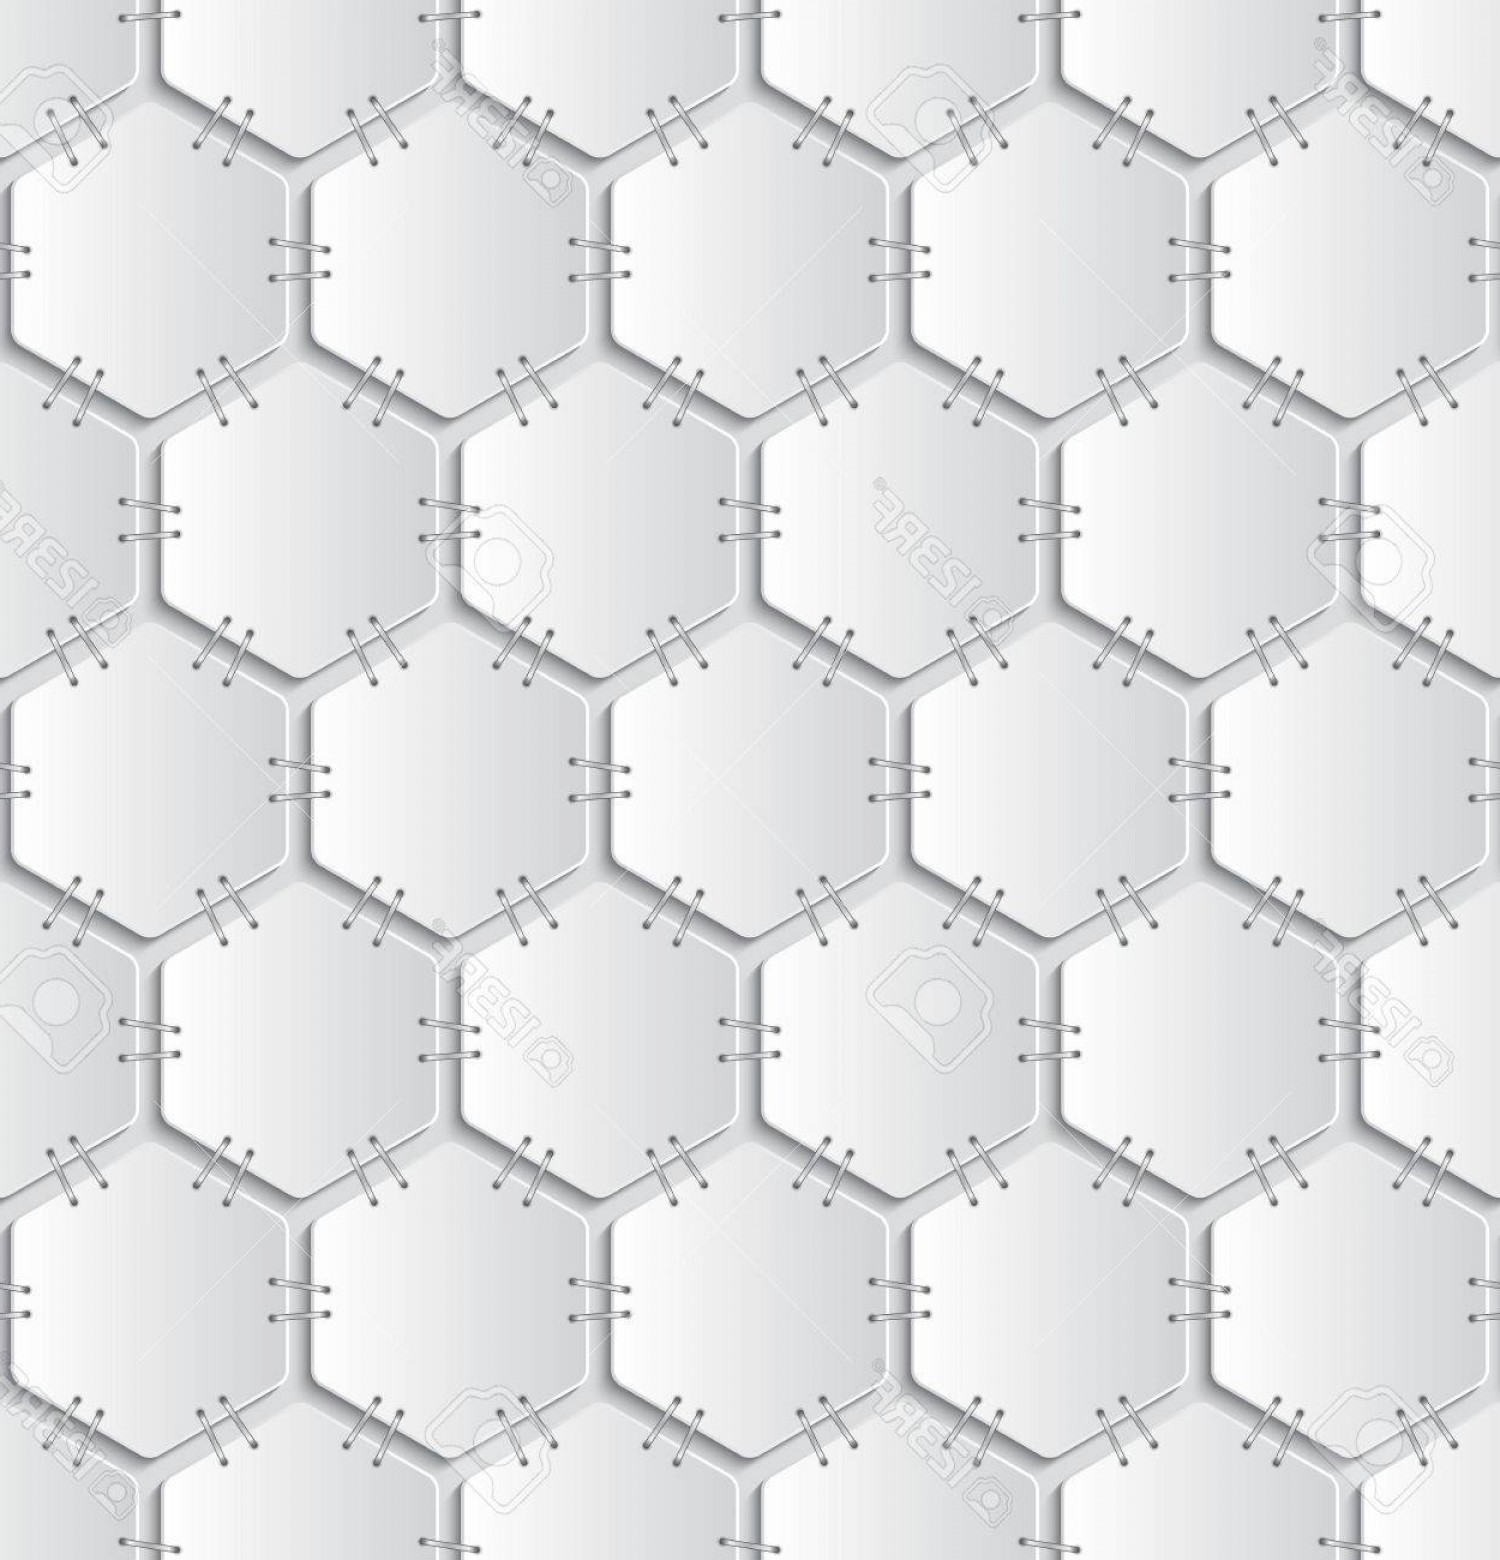 White Staples Vector Logo: Photostock Vector White Papers Attached With Staples Seamless Pattern On Light Grey Background